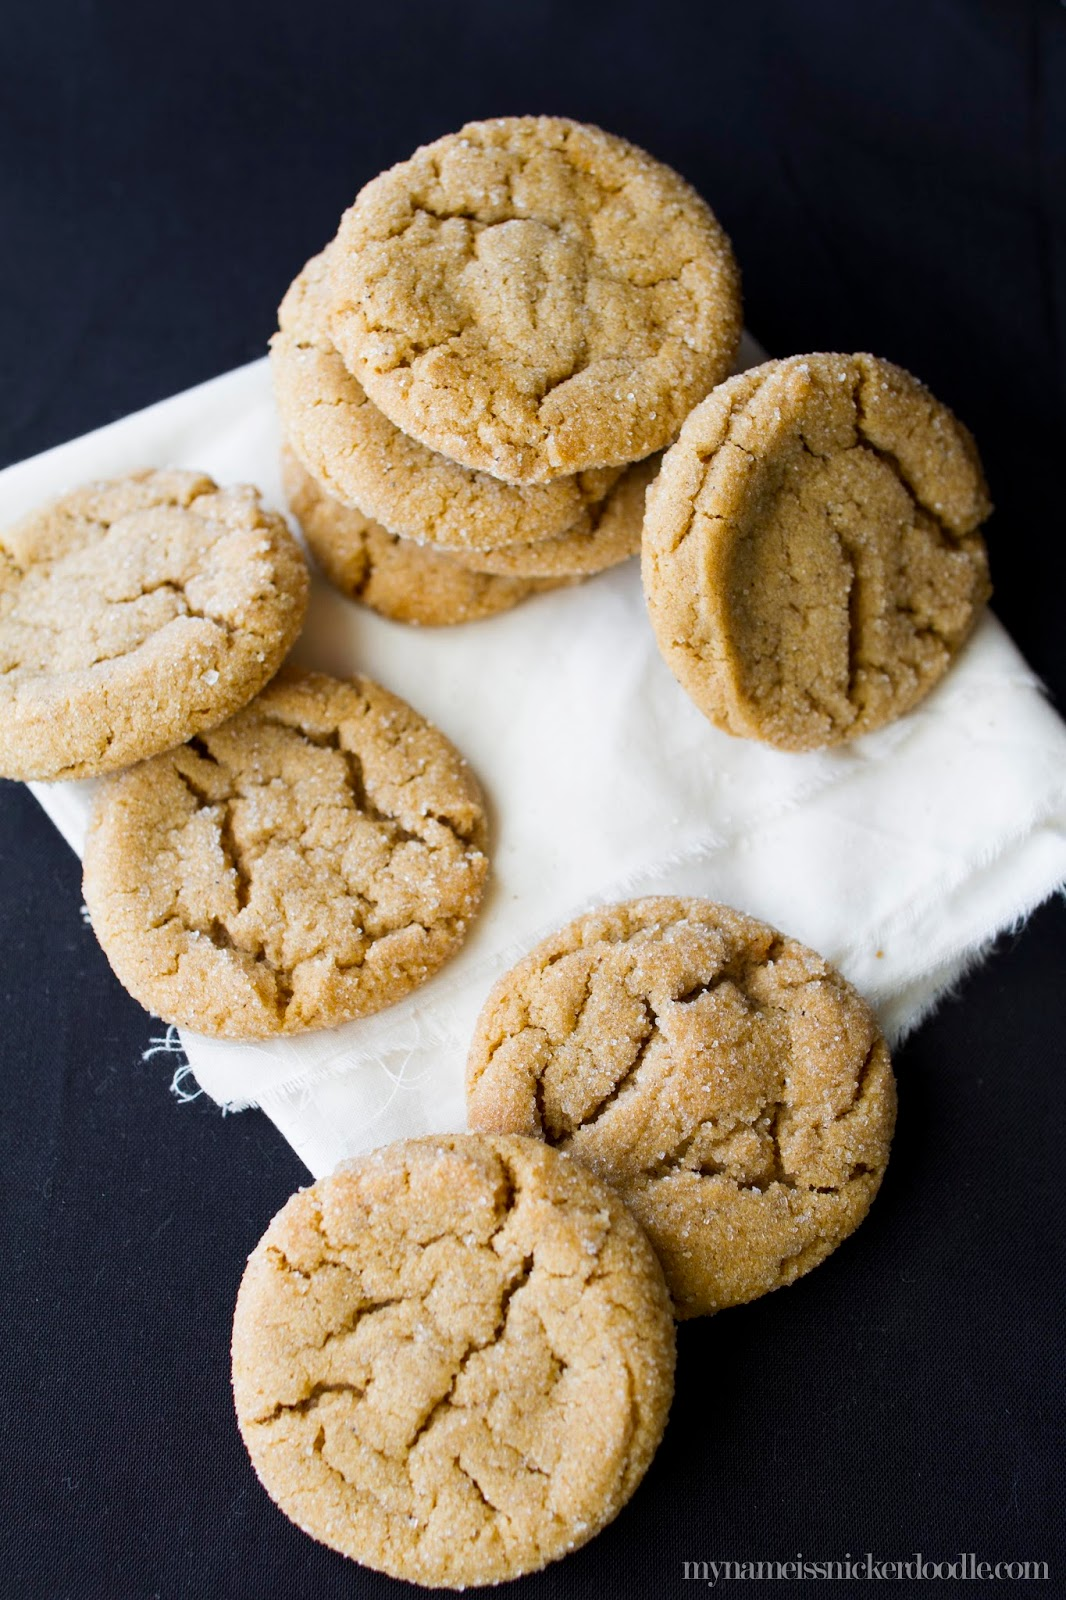 Soft and Chewy Ginger Cookies | My Name Is Snickerdoodle